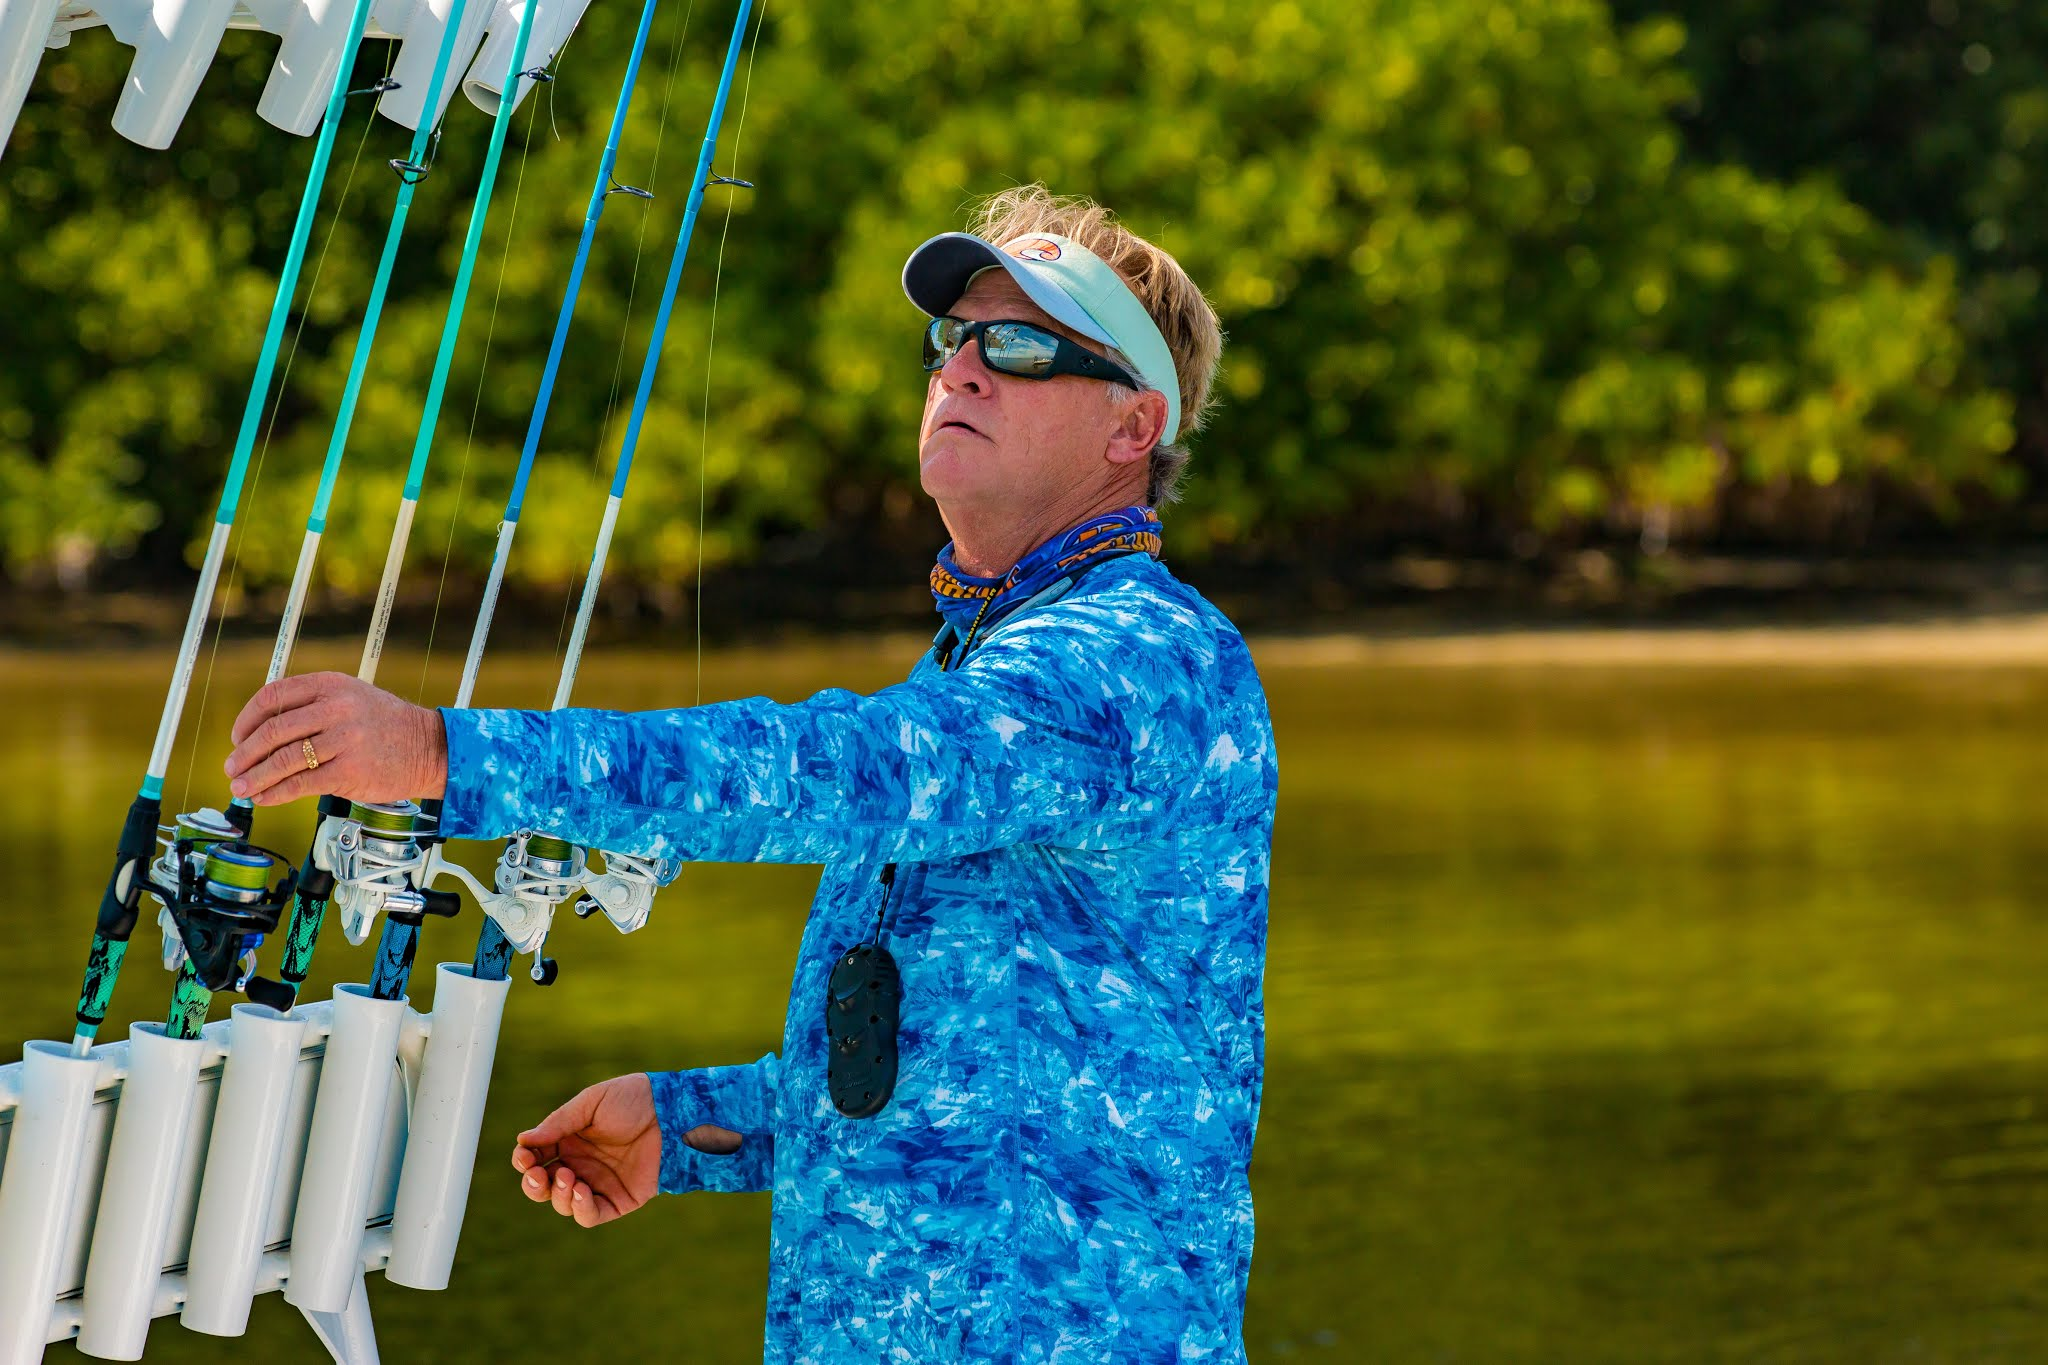 Capt Blair Wiggins from Addictive Fishing TV